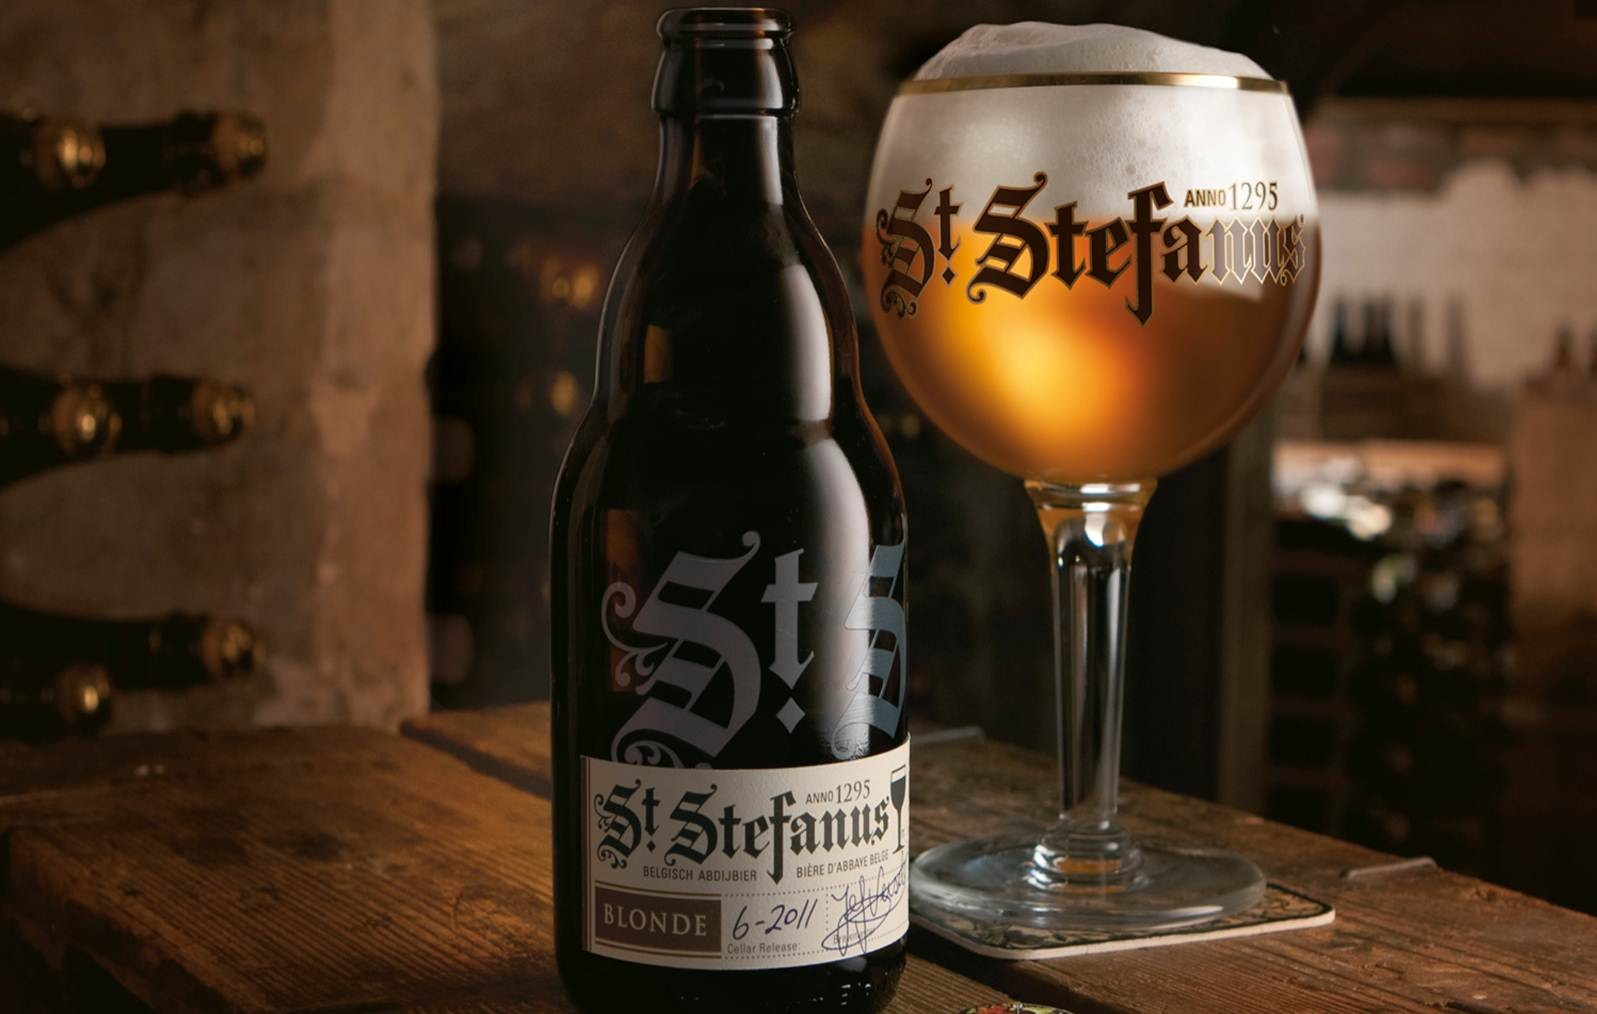 St. Stefanus beer label design inspiration